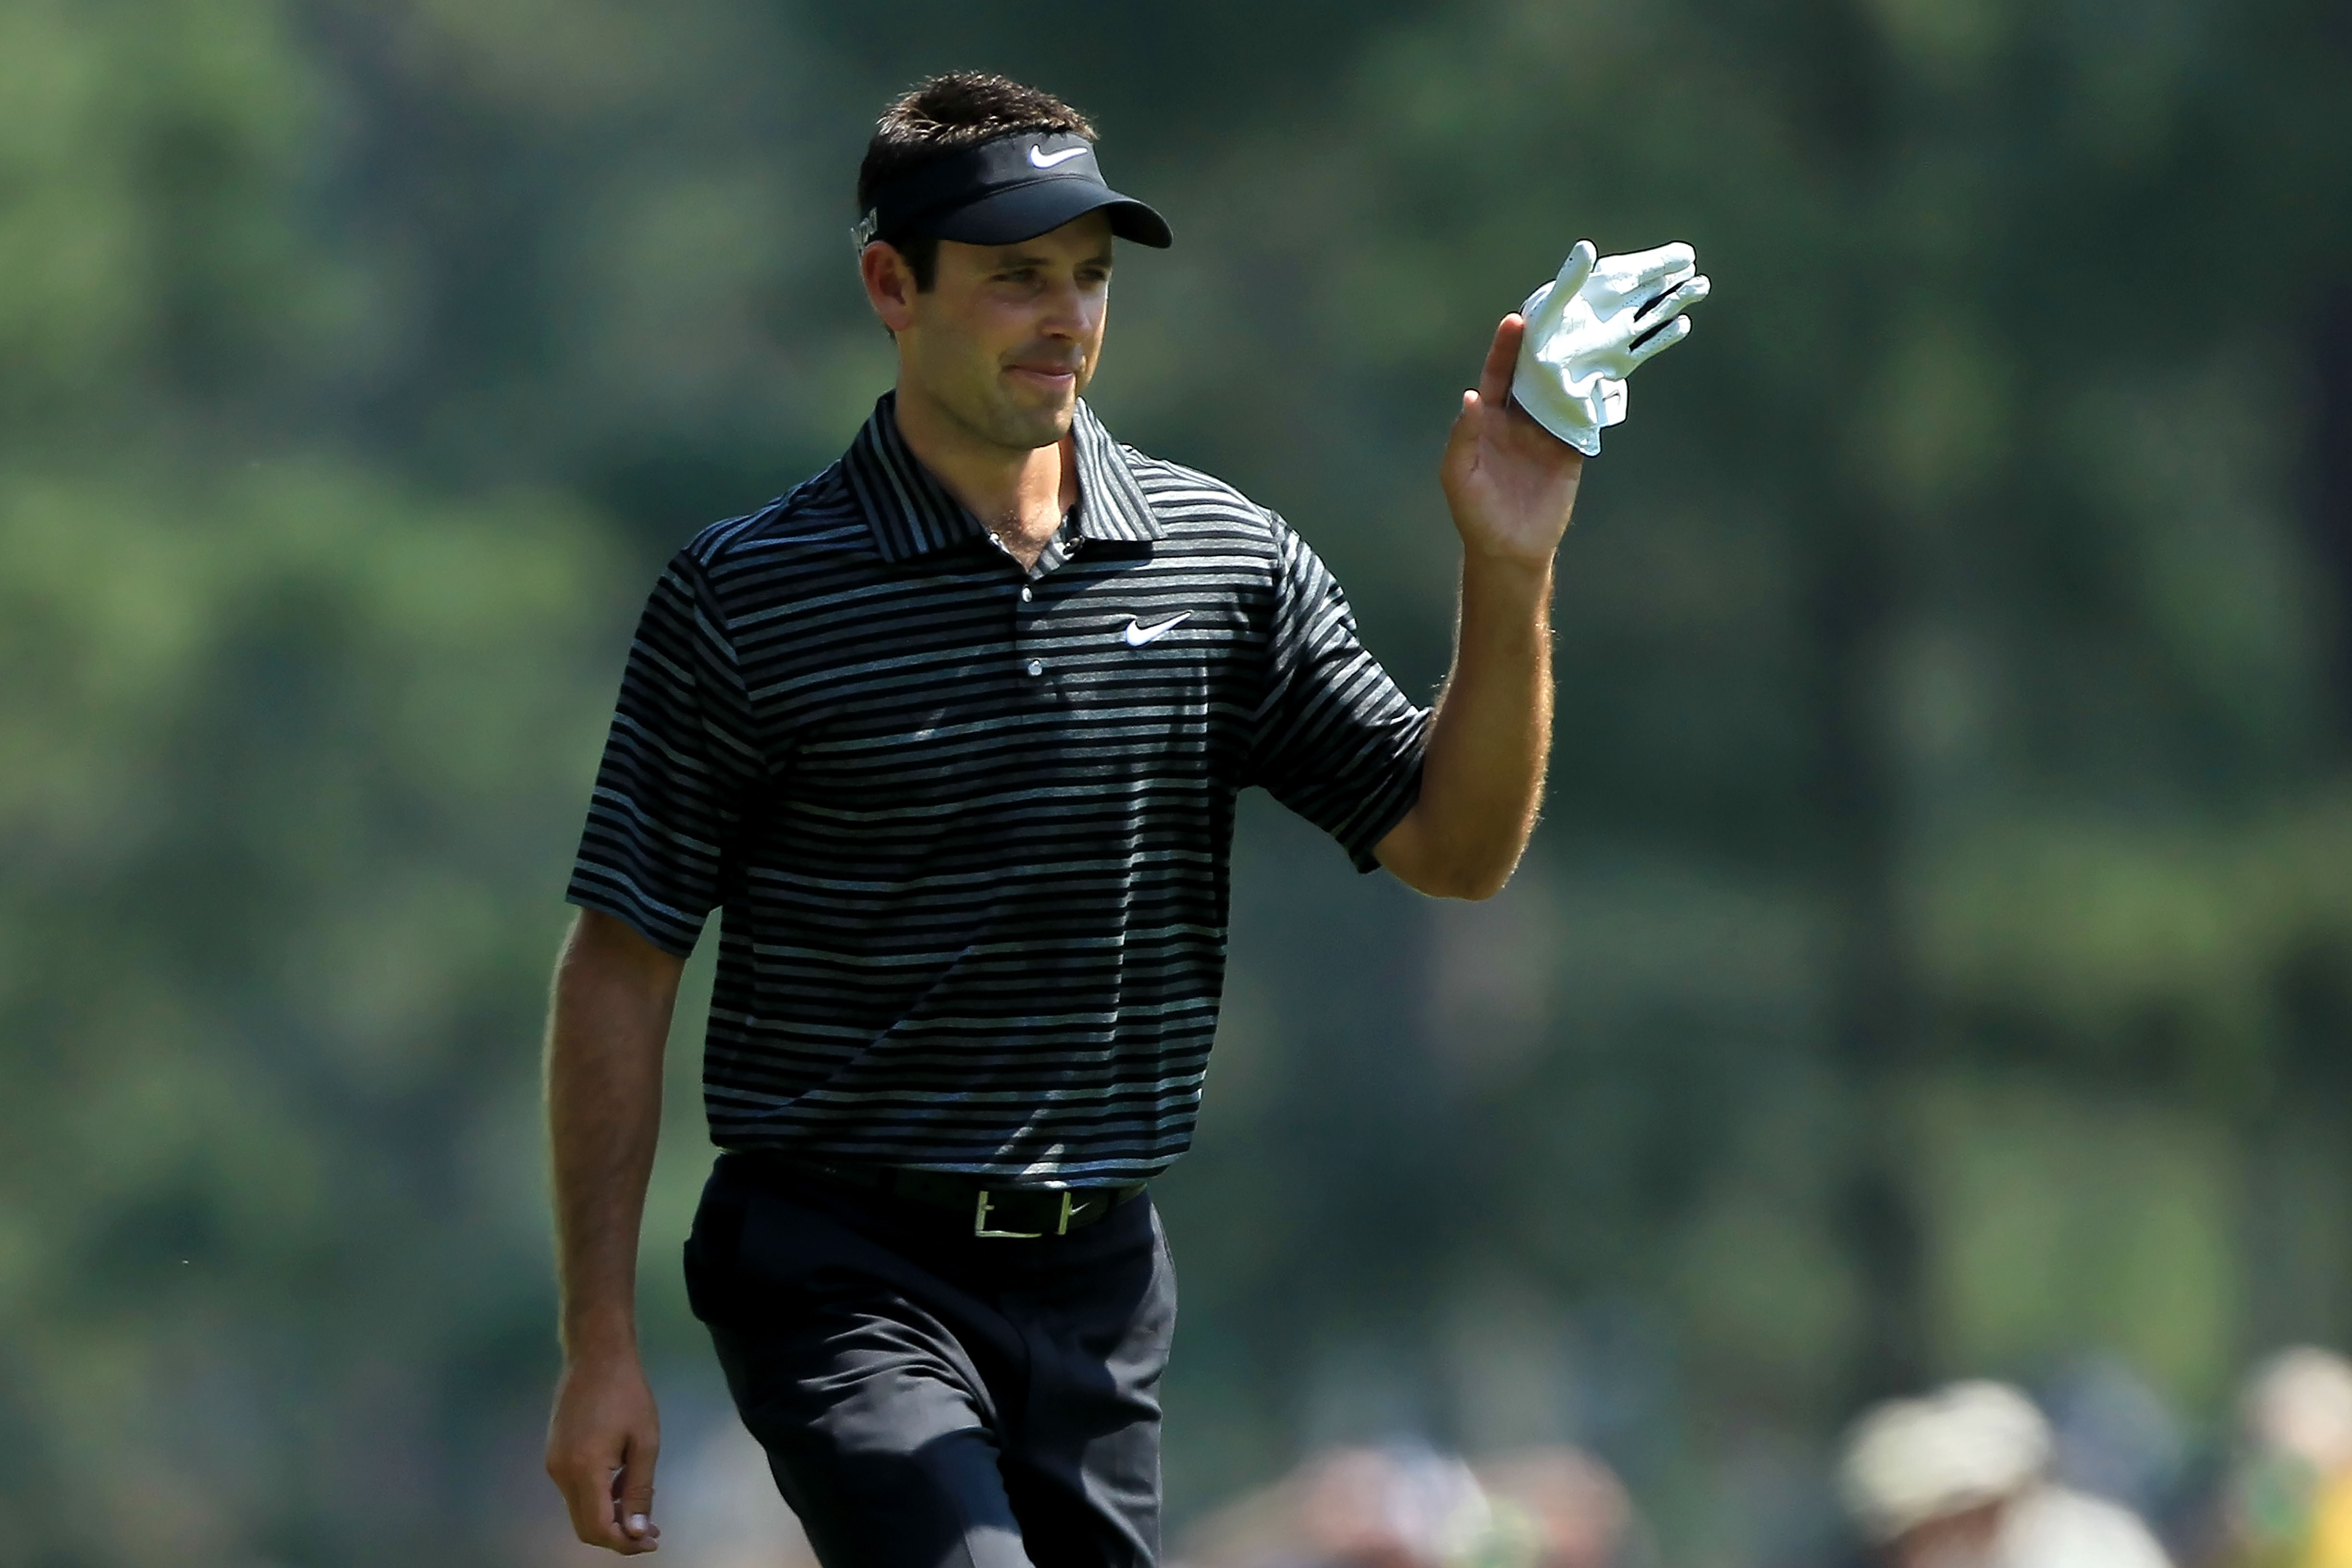 AUGUSTA, GA - APRIL 10:  Charl Schwartzel of South Africa waves to the gallery after holing a shot for eagle on the third green during the final round of the 2011 Masters Tournament on April 10, 2011 in Augusta, Georgia.  (Photo by David Cannon/Getty Imag